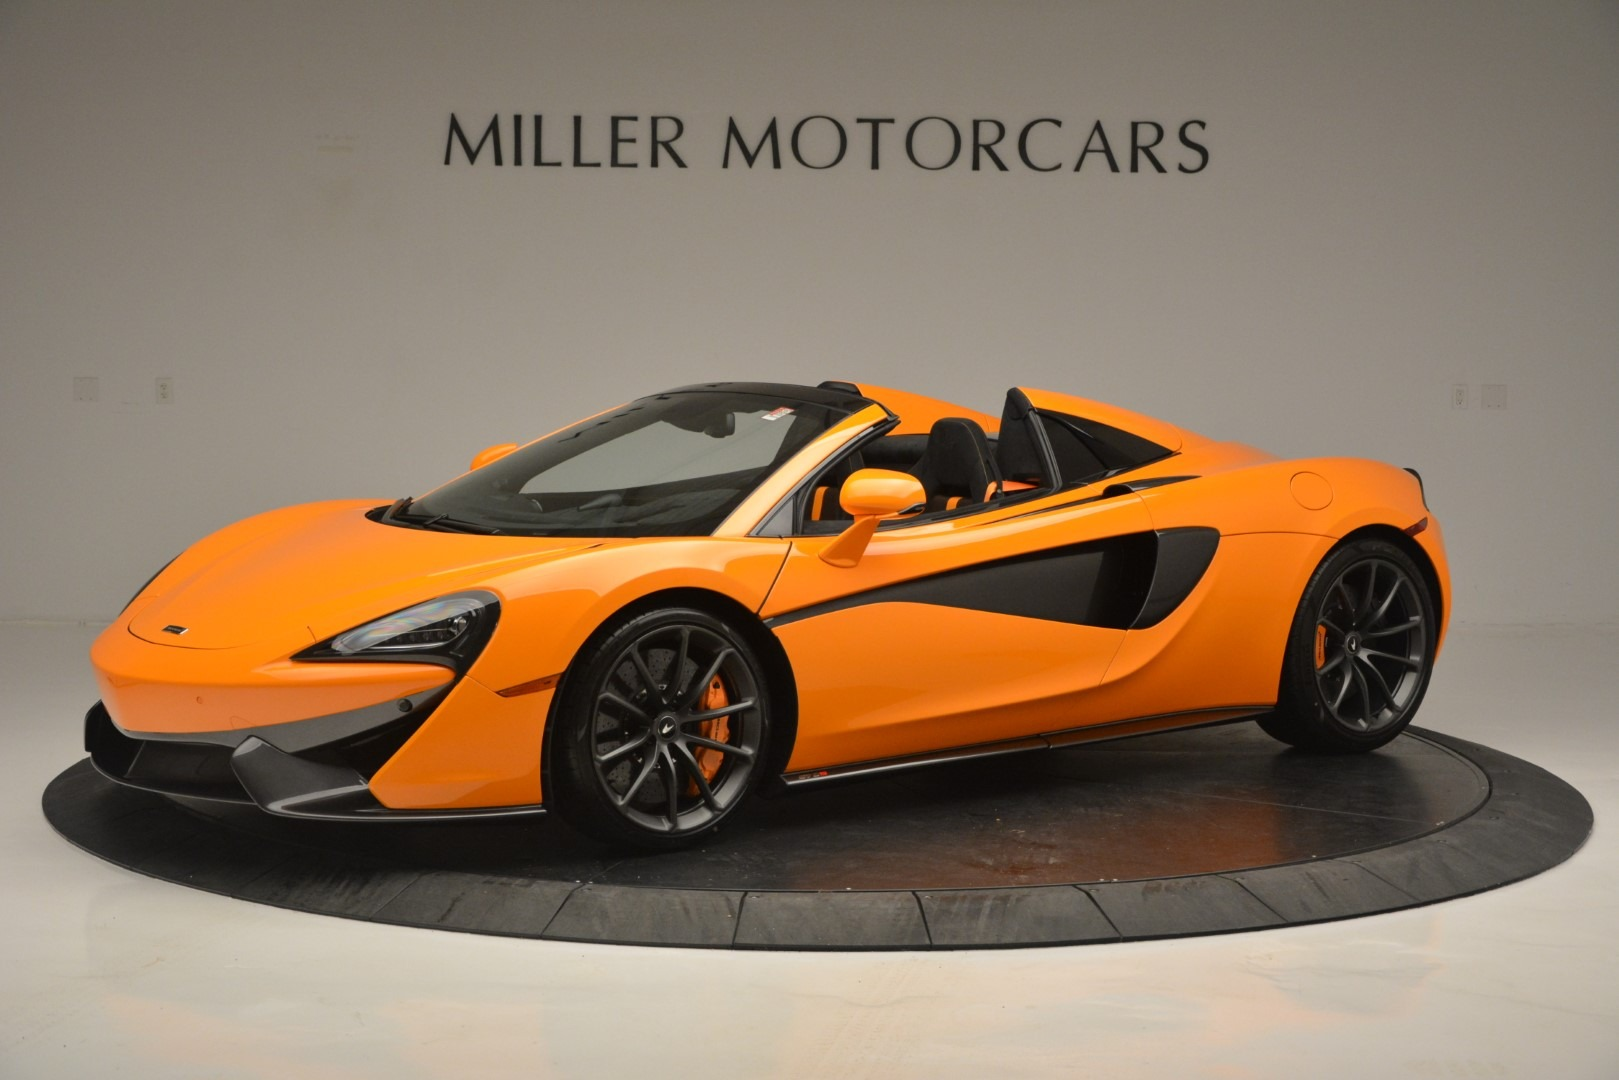 Used 2019 McLaren 570S SPIDER Convertible for sale $215,000 at McLaren Greenwich in Greenwich CT 06830 1